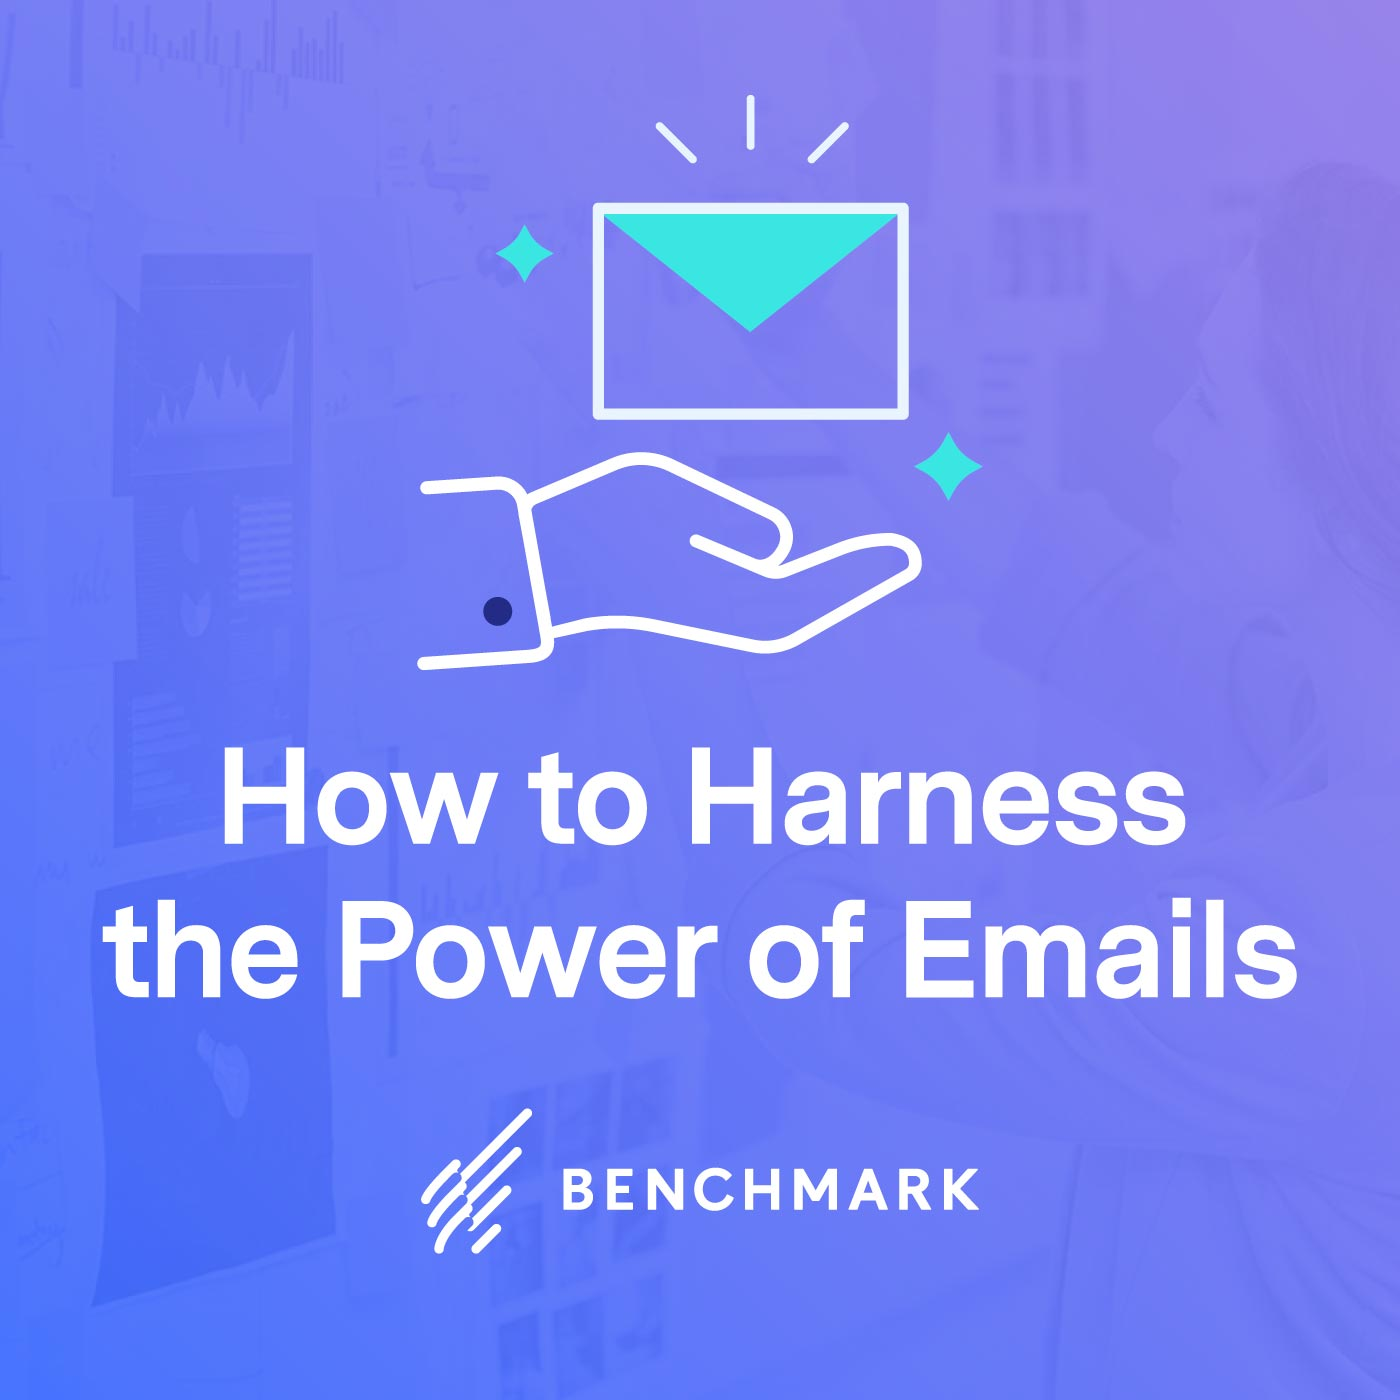 How to Harness the Power of Emails at Every Stage of Your Buyers' Journey